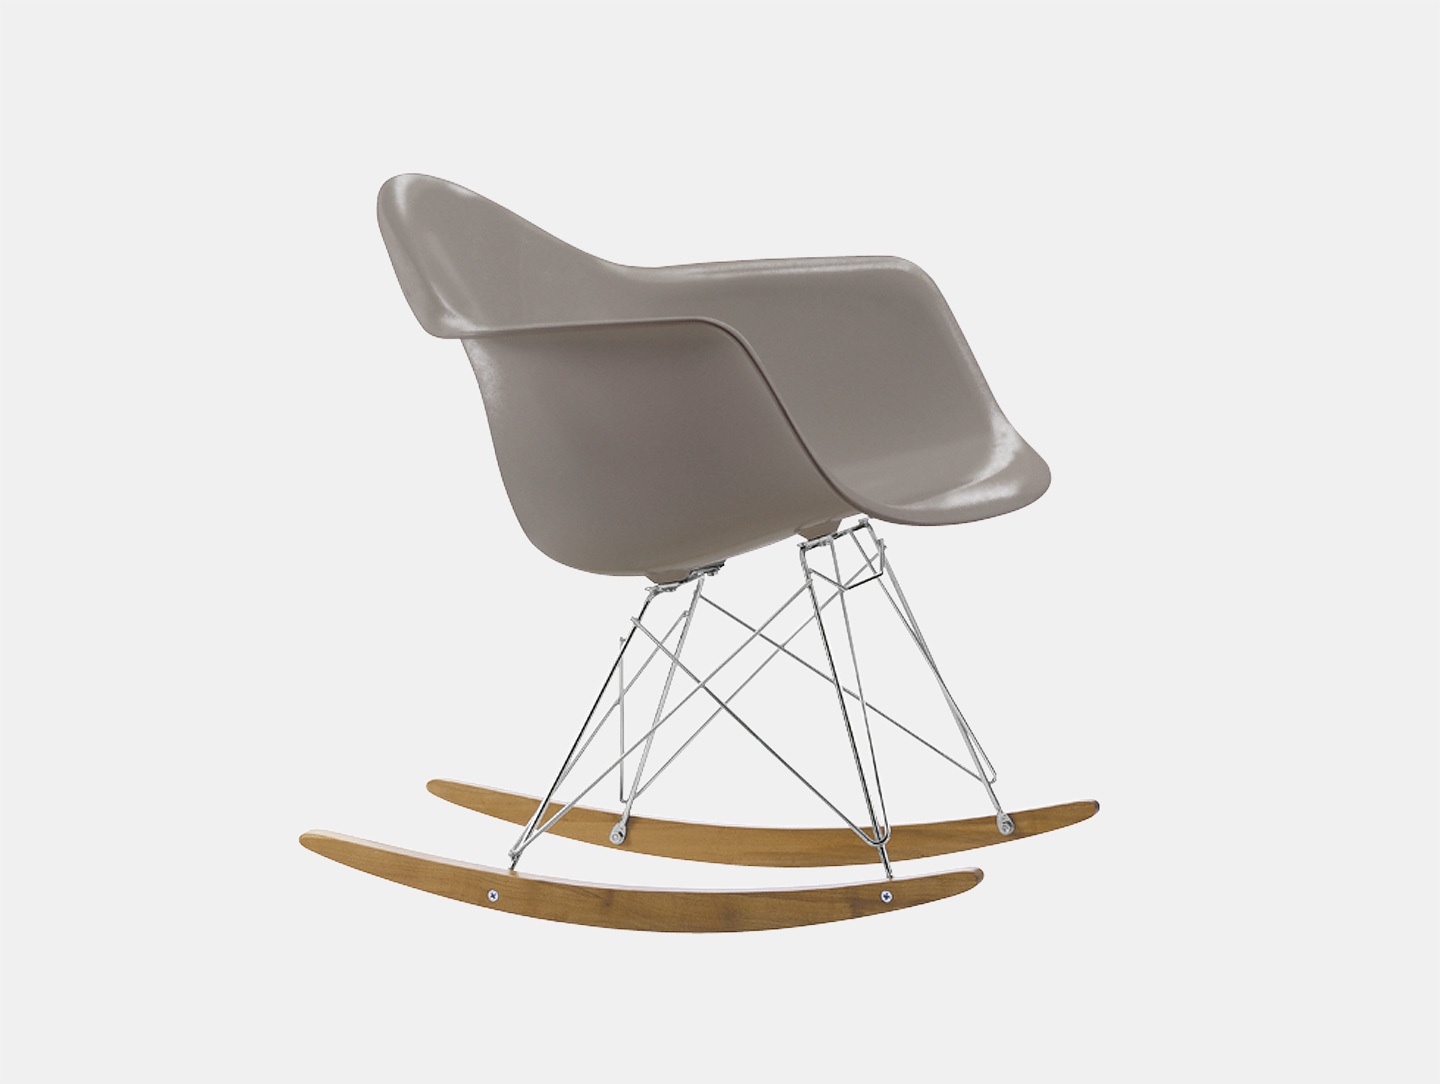 Eames RAR Rocking Chair image 1